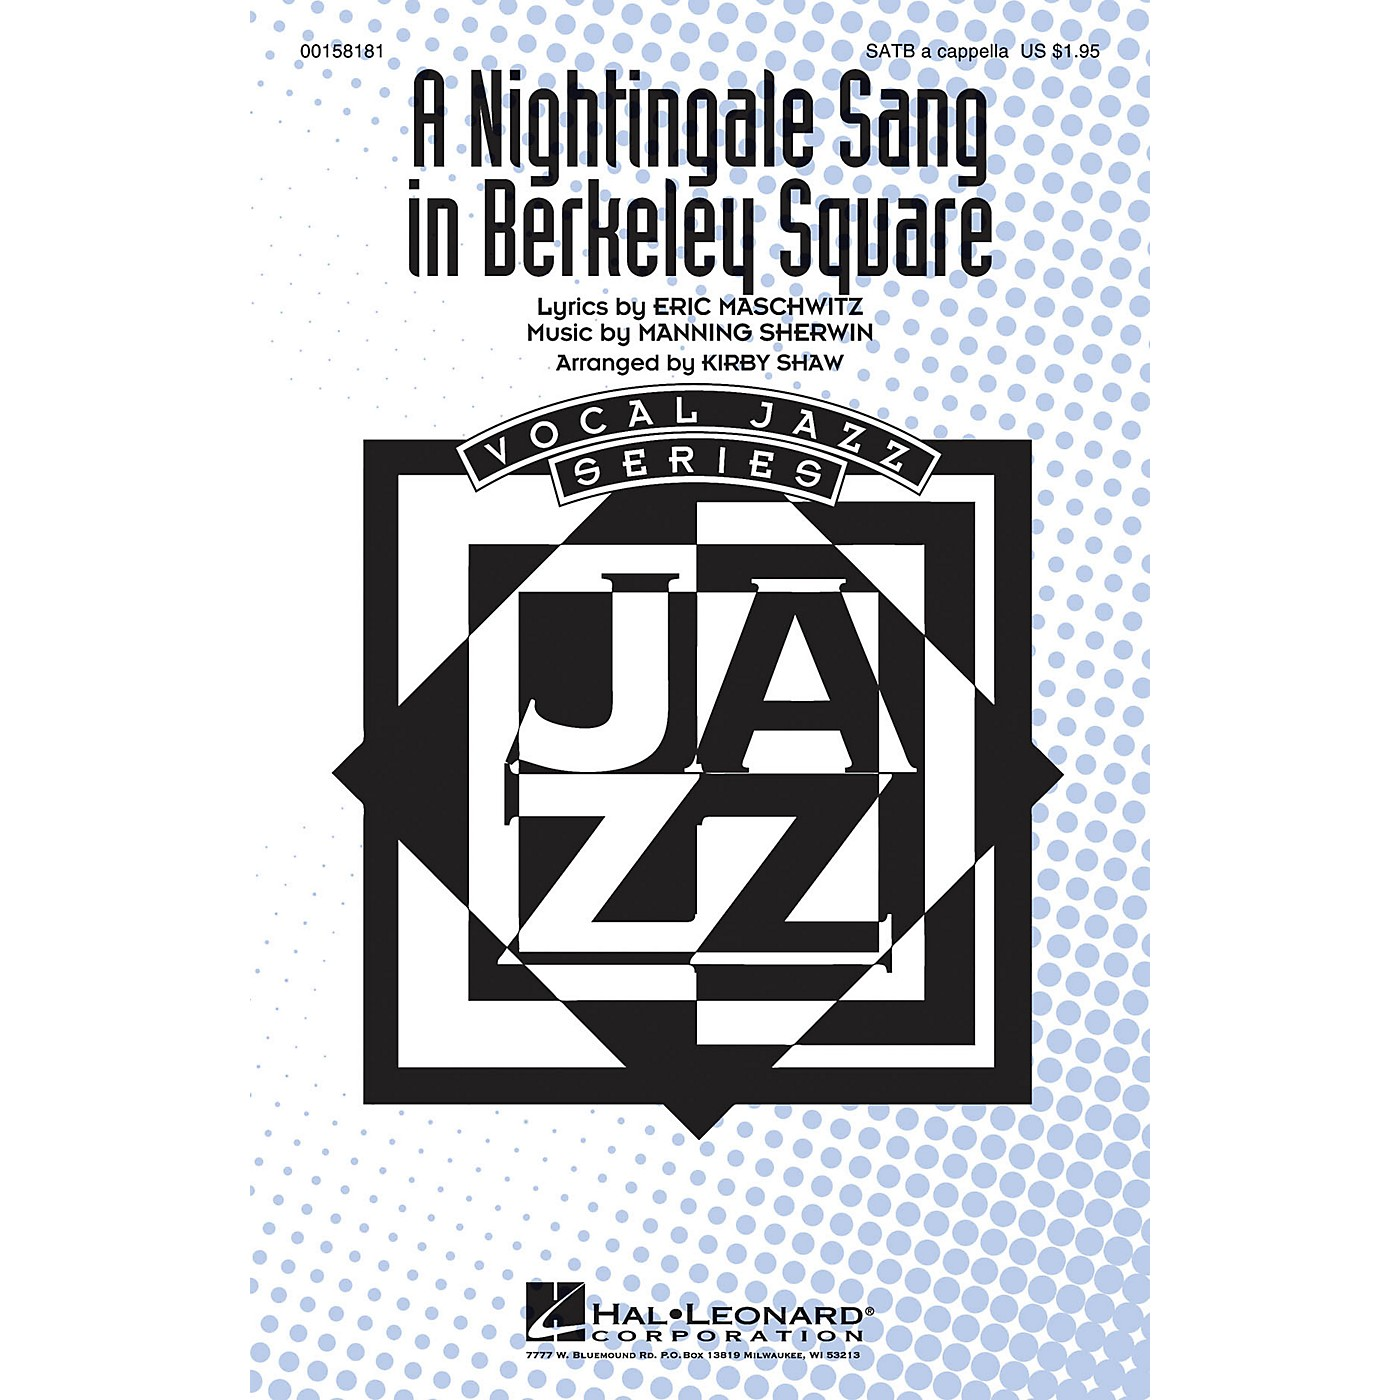 Hal Leonard A Nightingale Sang in Berkeley Square SATB a cappella arranged by Kirby Shaw thumbnail